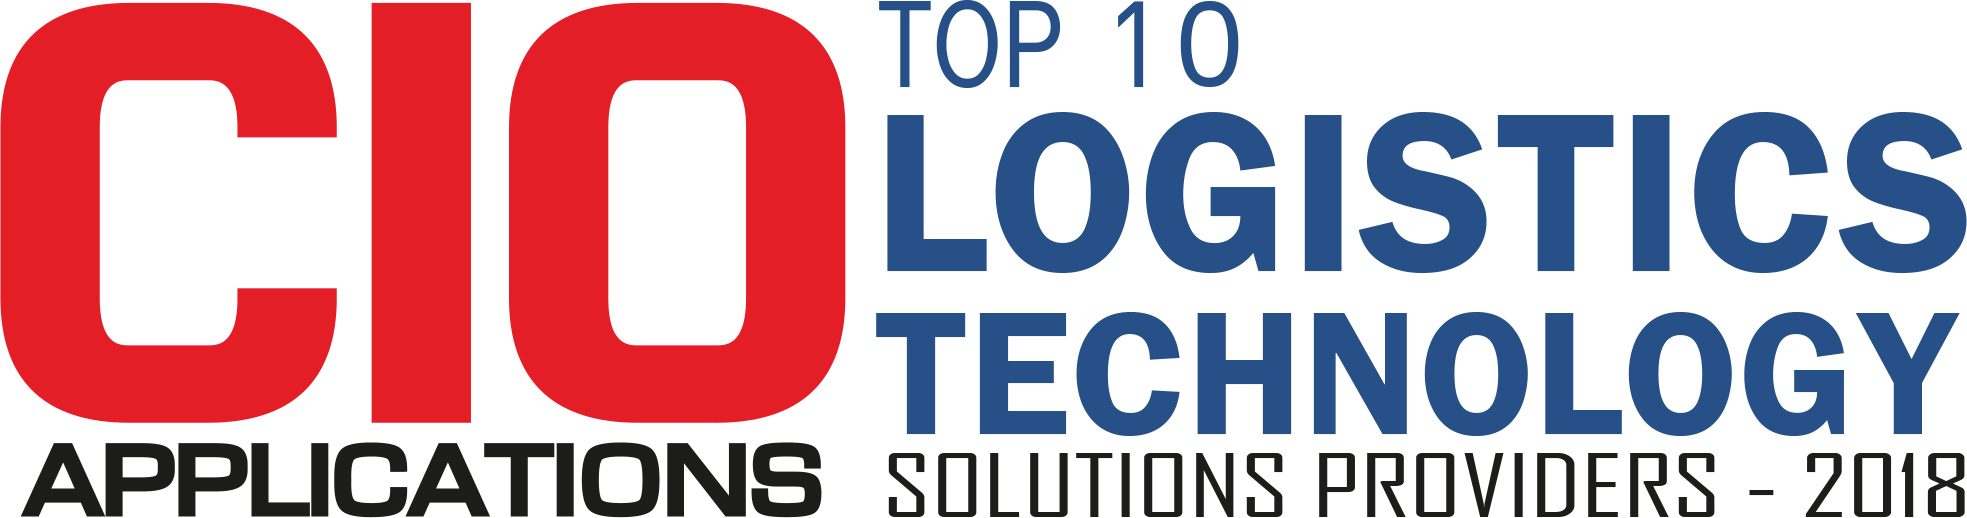 Top 10 Logistics Technology Solution Companies - 2018